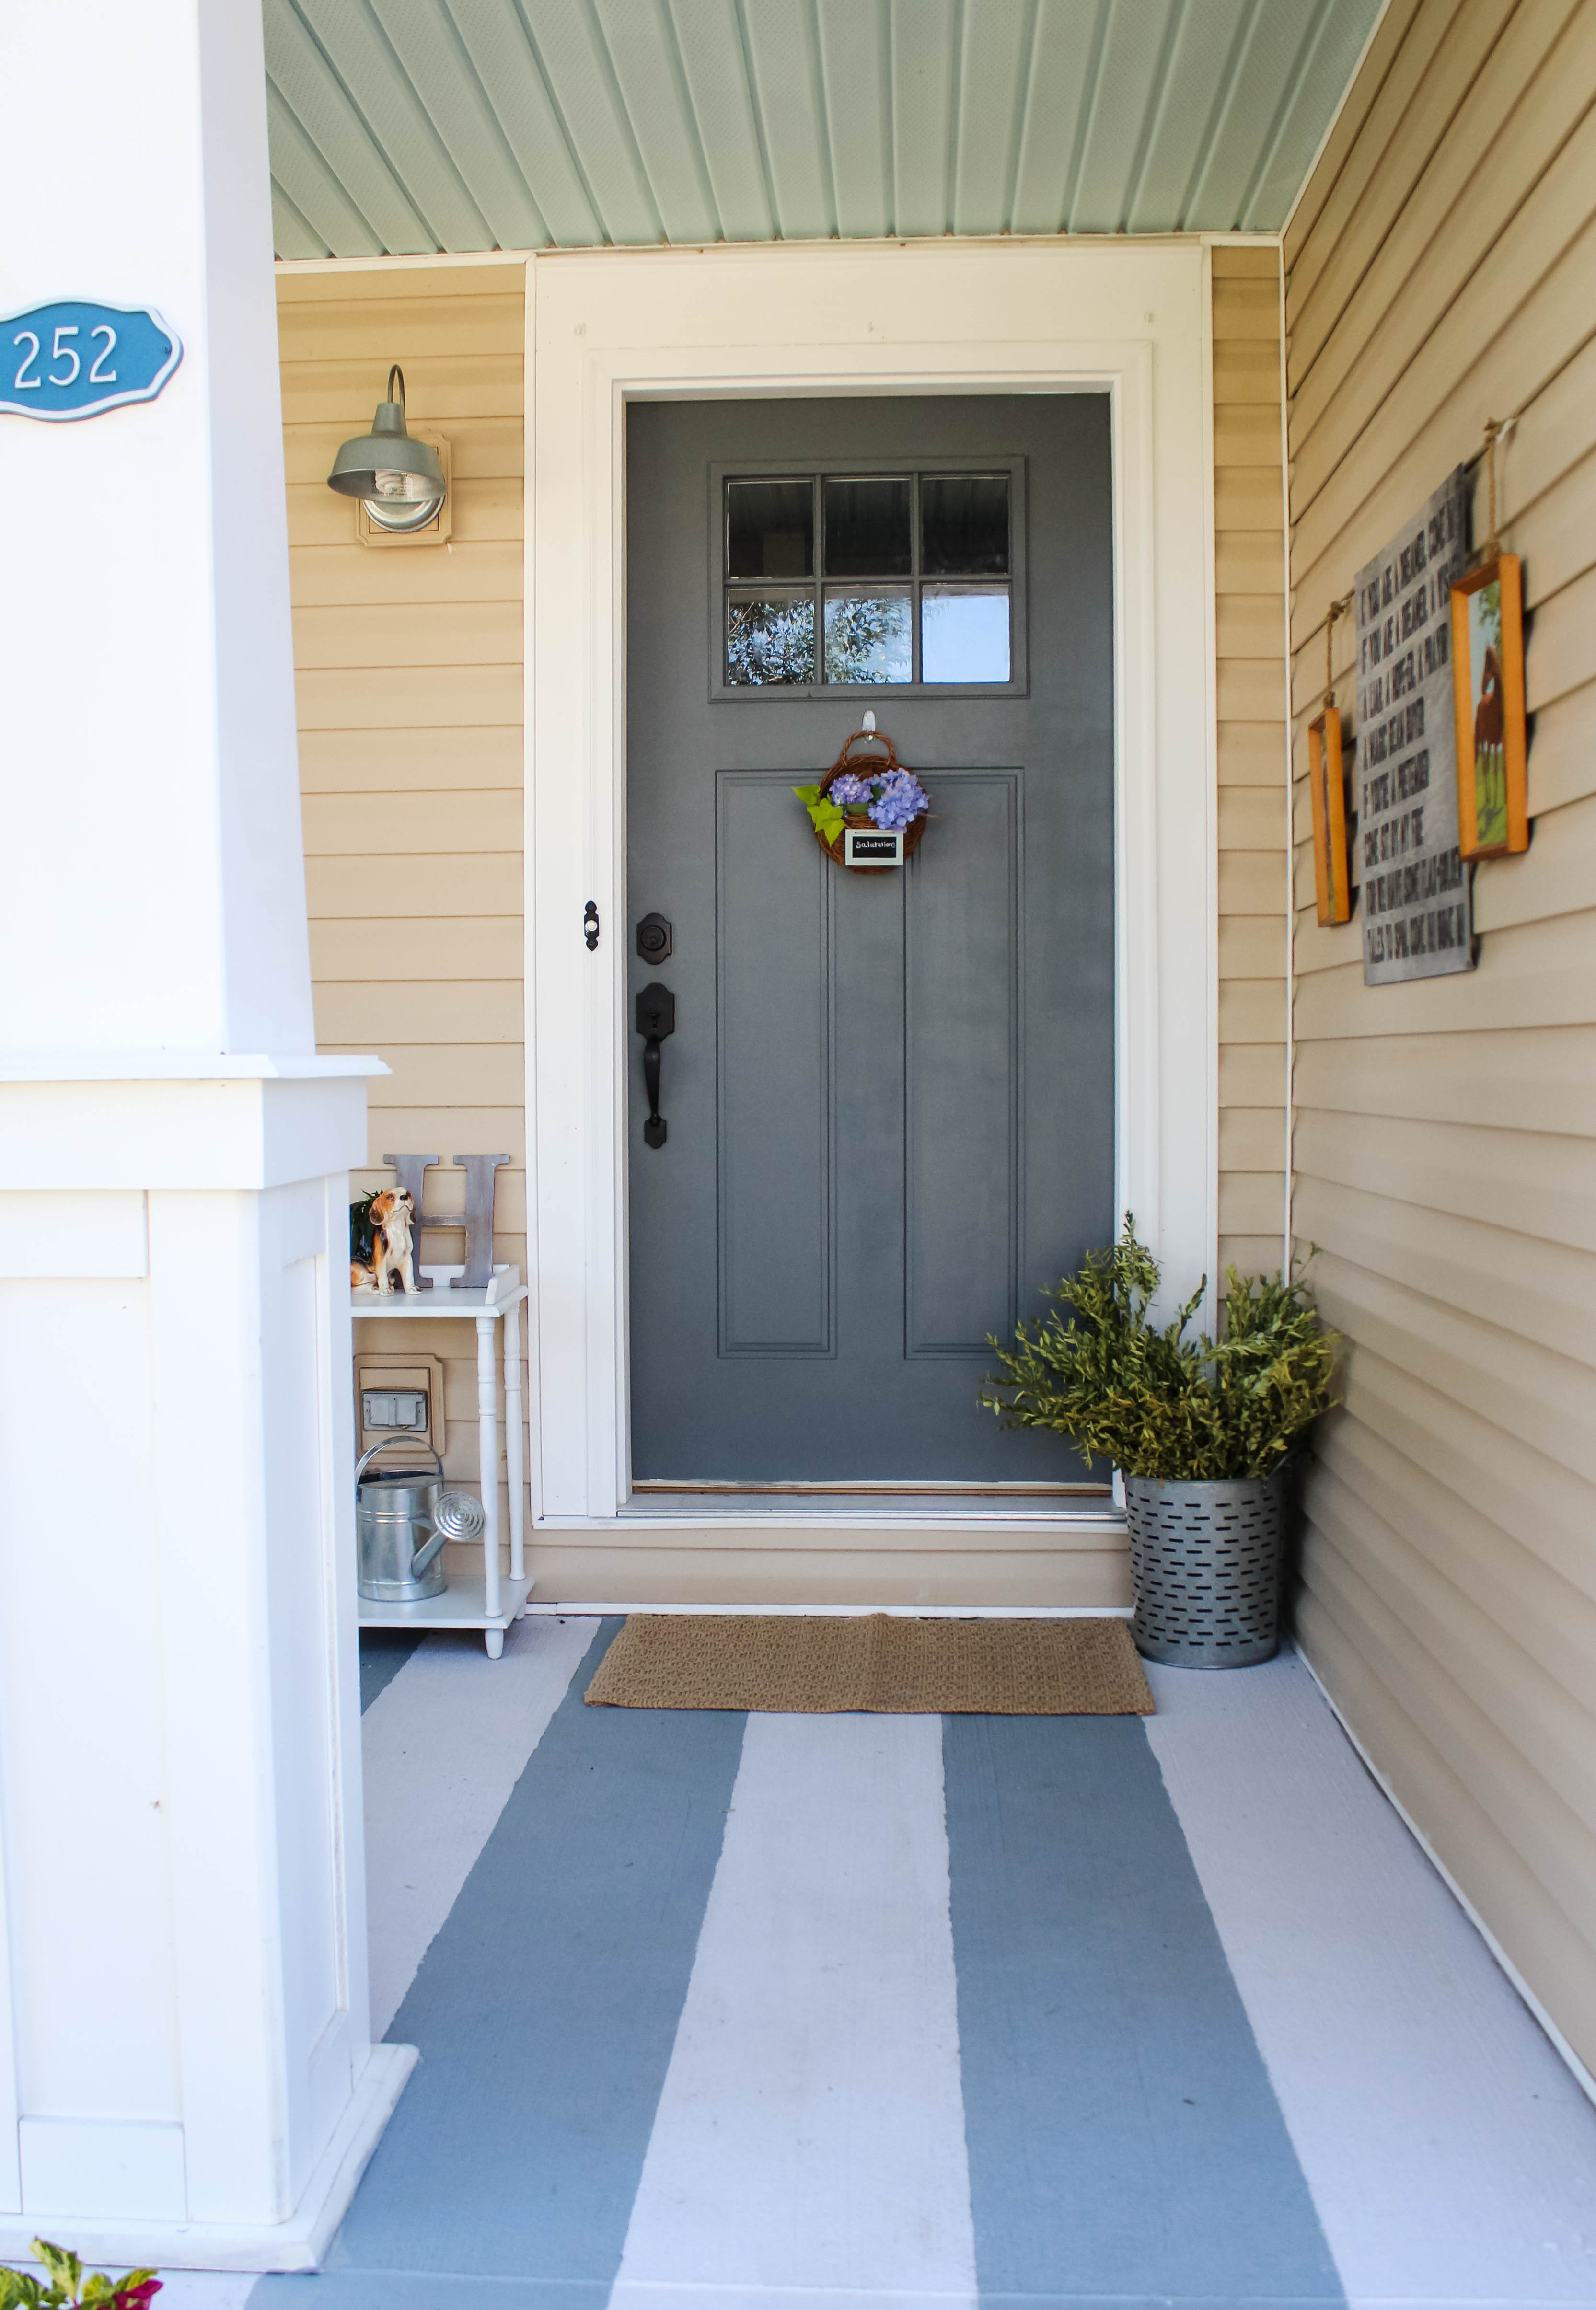 How To Hang Decor On Vinyl Siding Our Storied Home